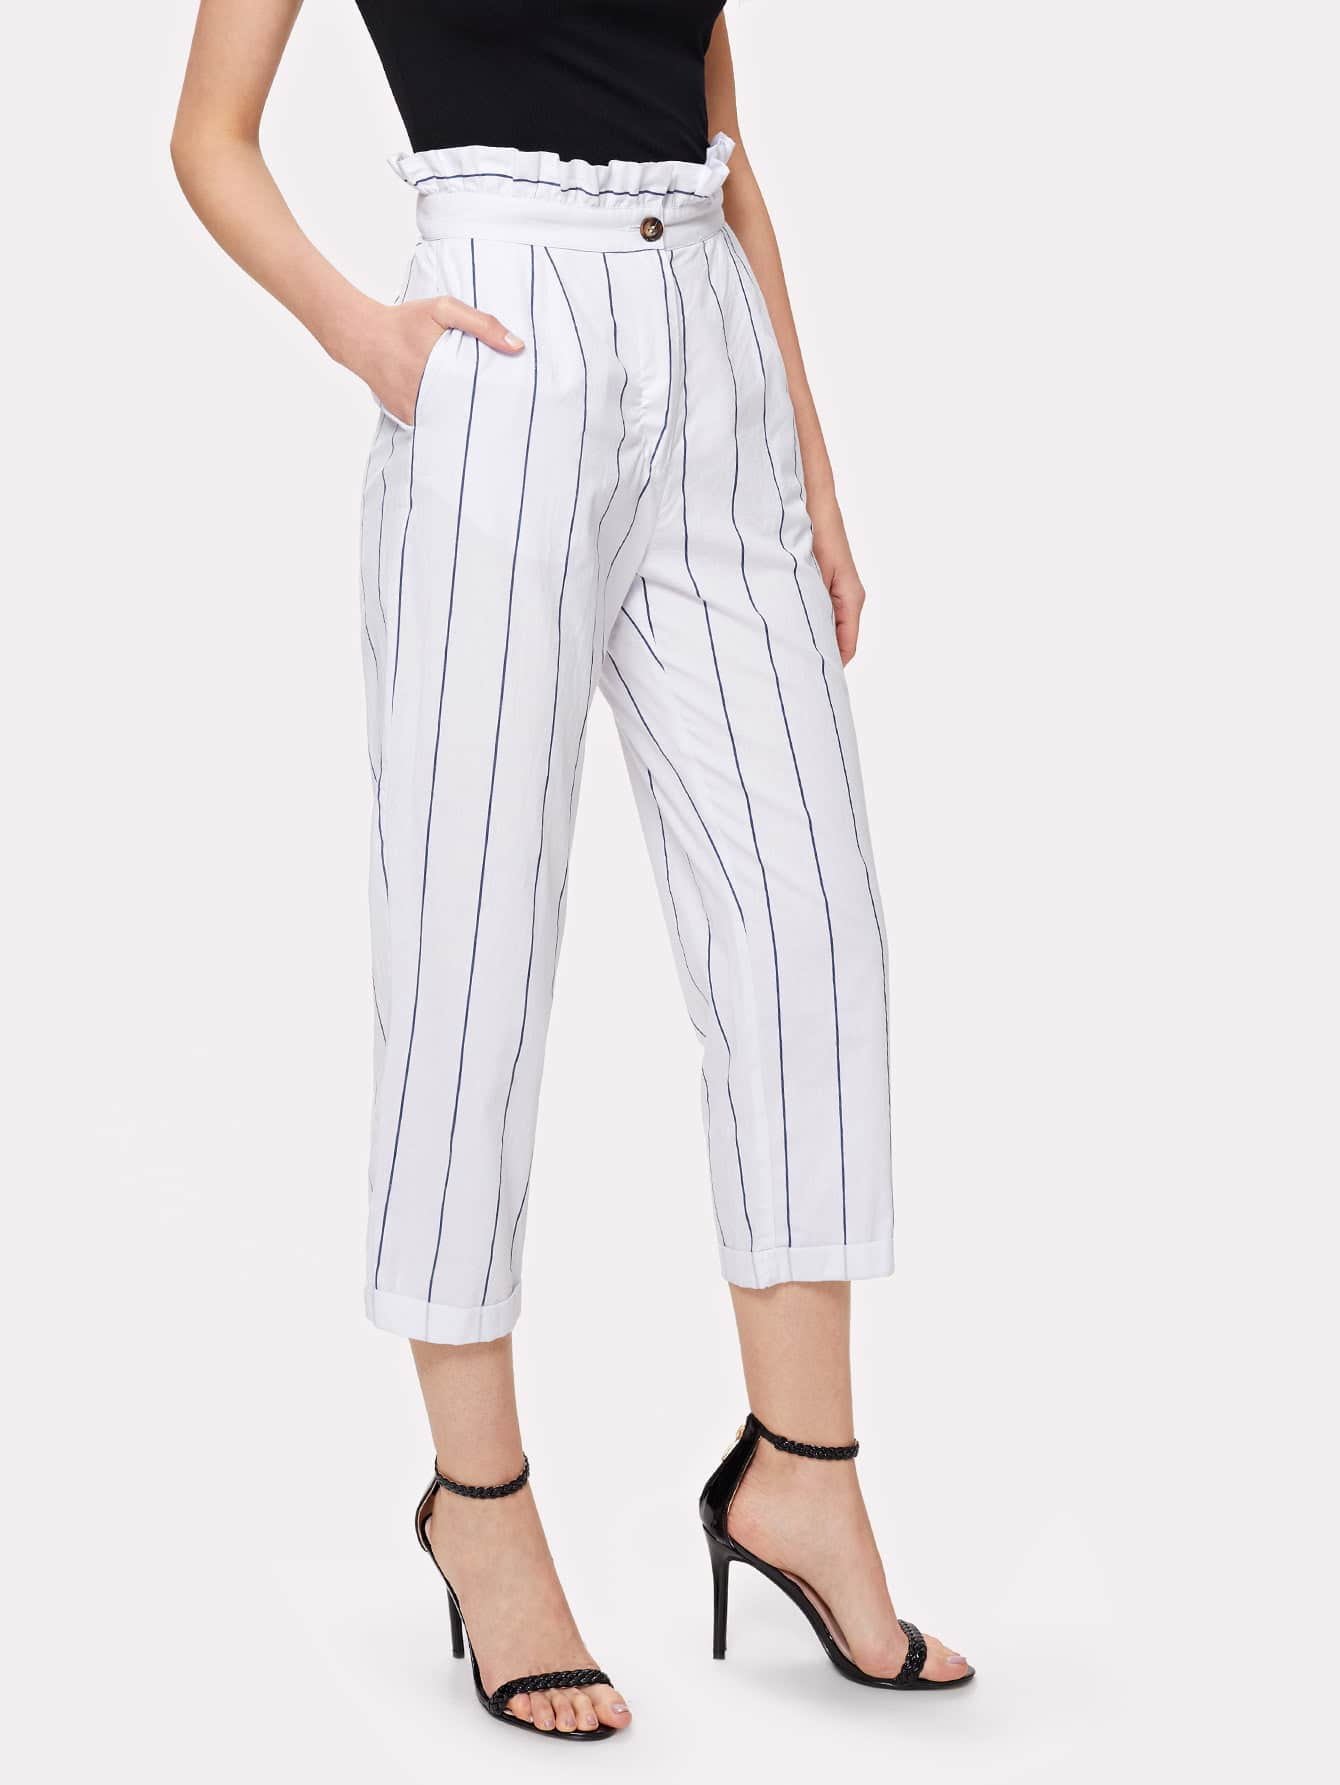 Ruffle Waist Cuffed Hem Striped Pants scallop waist ruffle hem crop pants